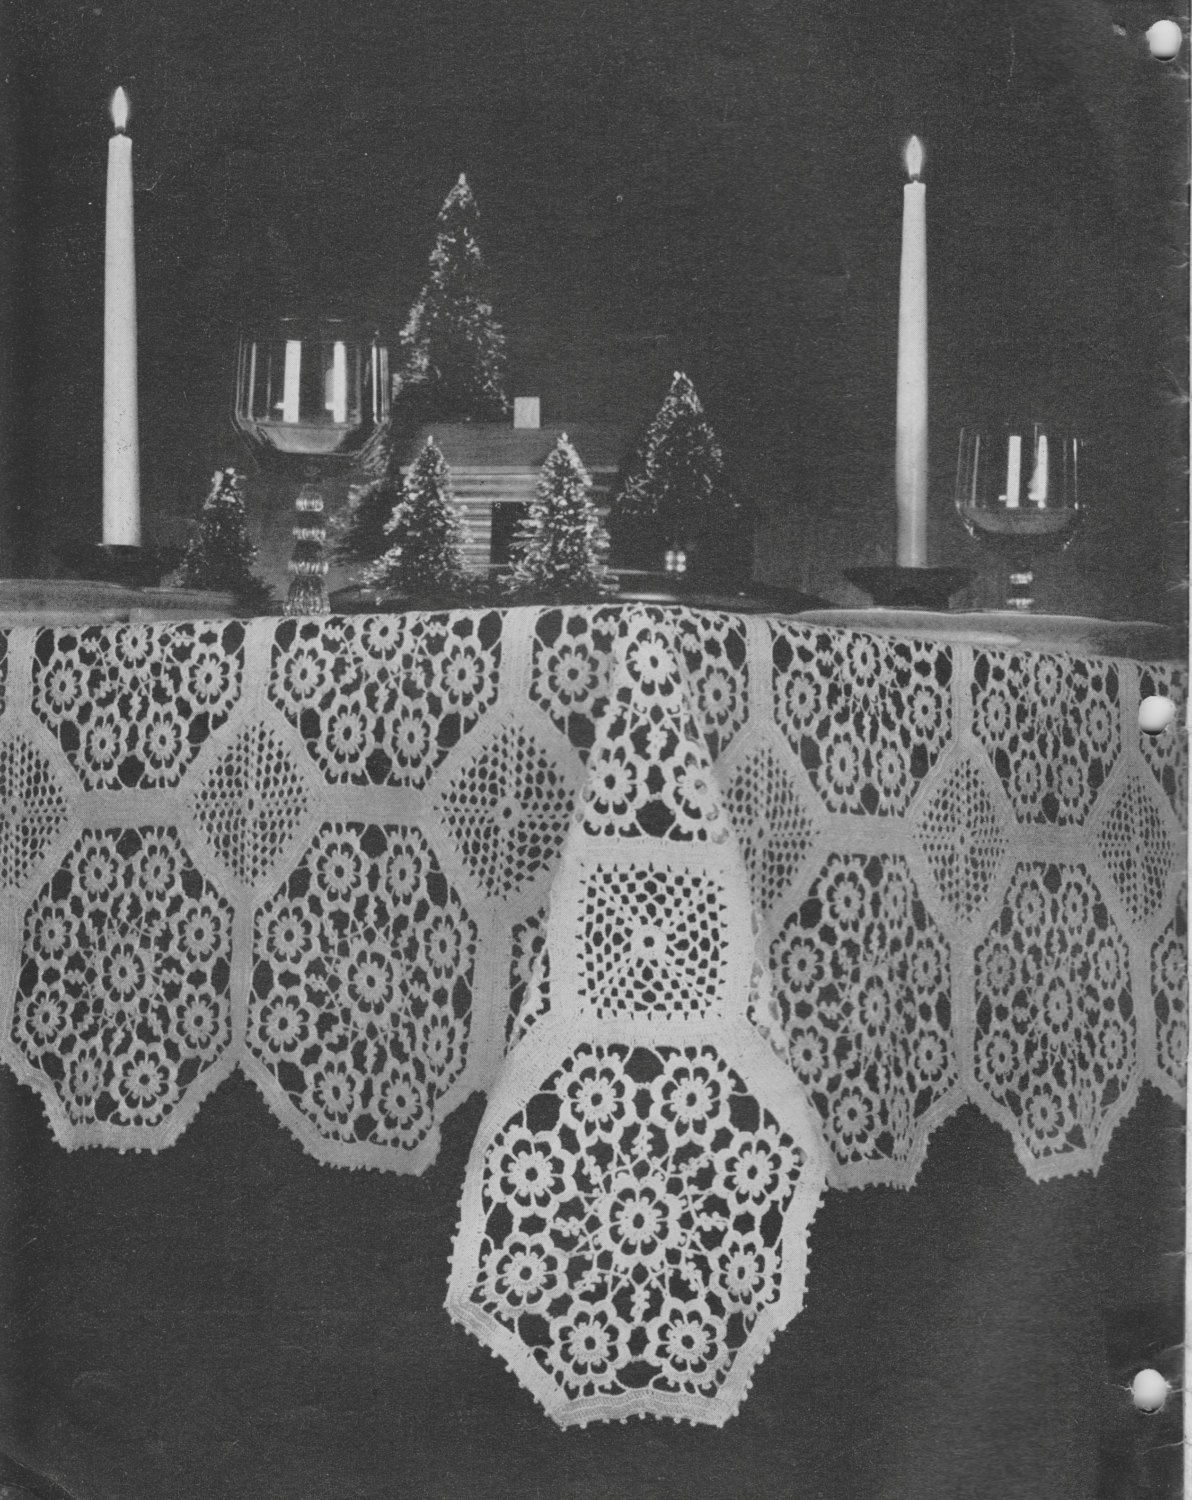 352 Tablecloth Crochet Pattern, Retro Home Decor, Dining Table ...